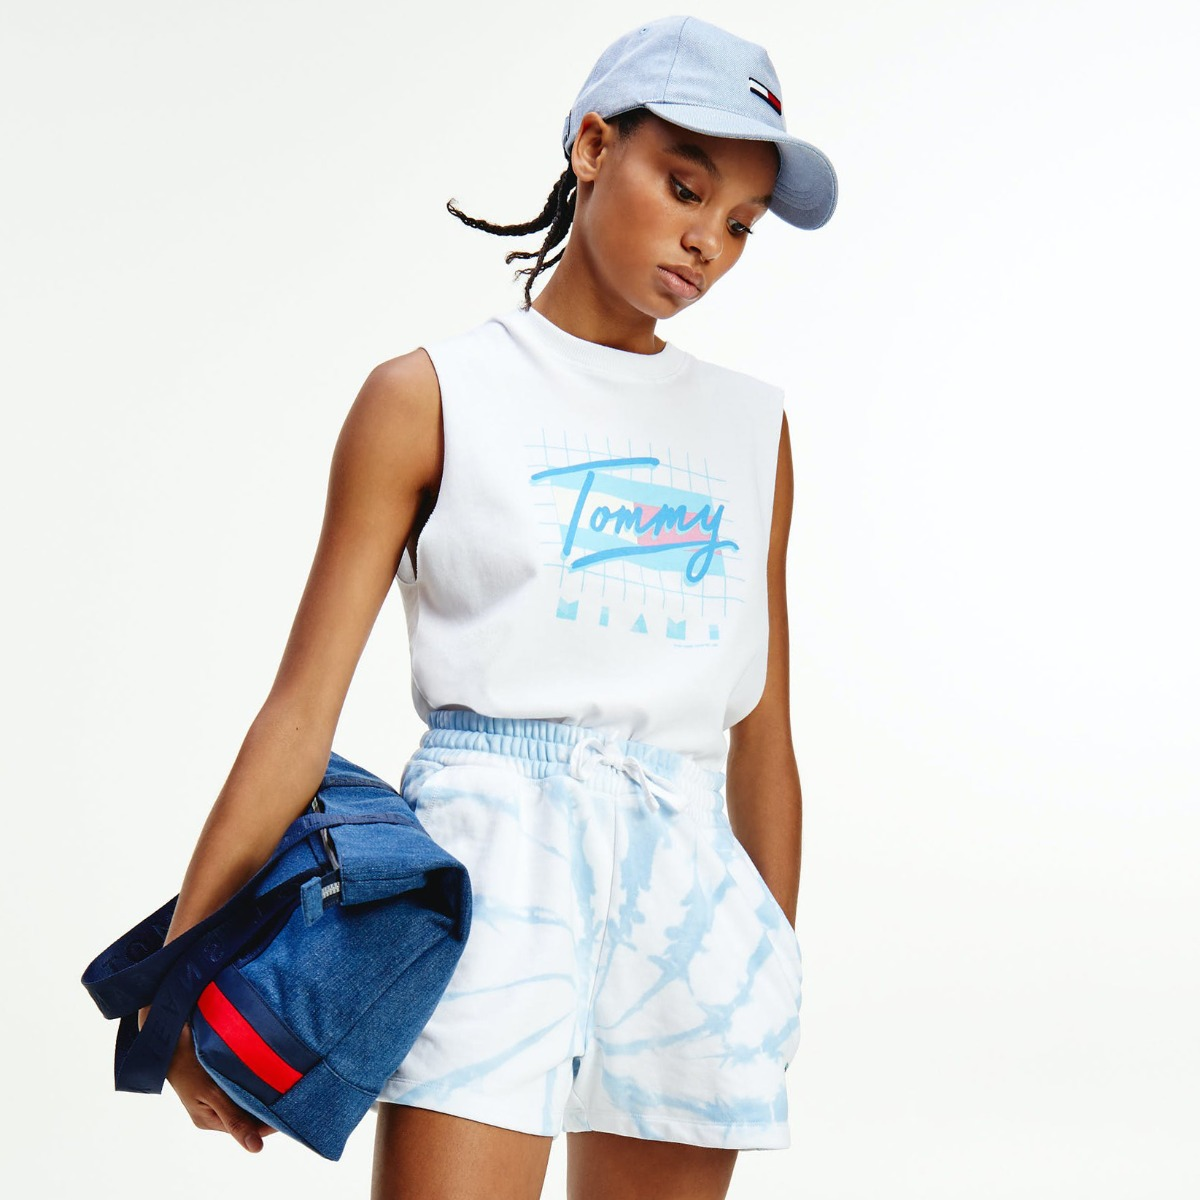 """<div style=""""text-align: left"""">TOMMY JEANS</div>"""